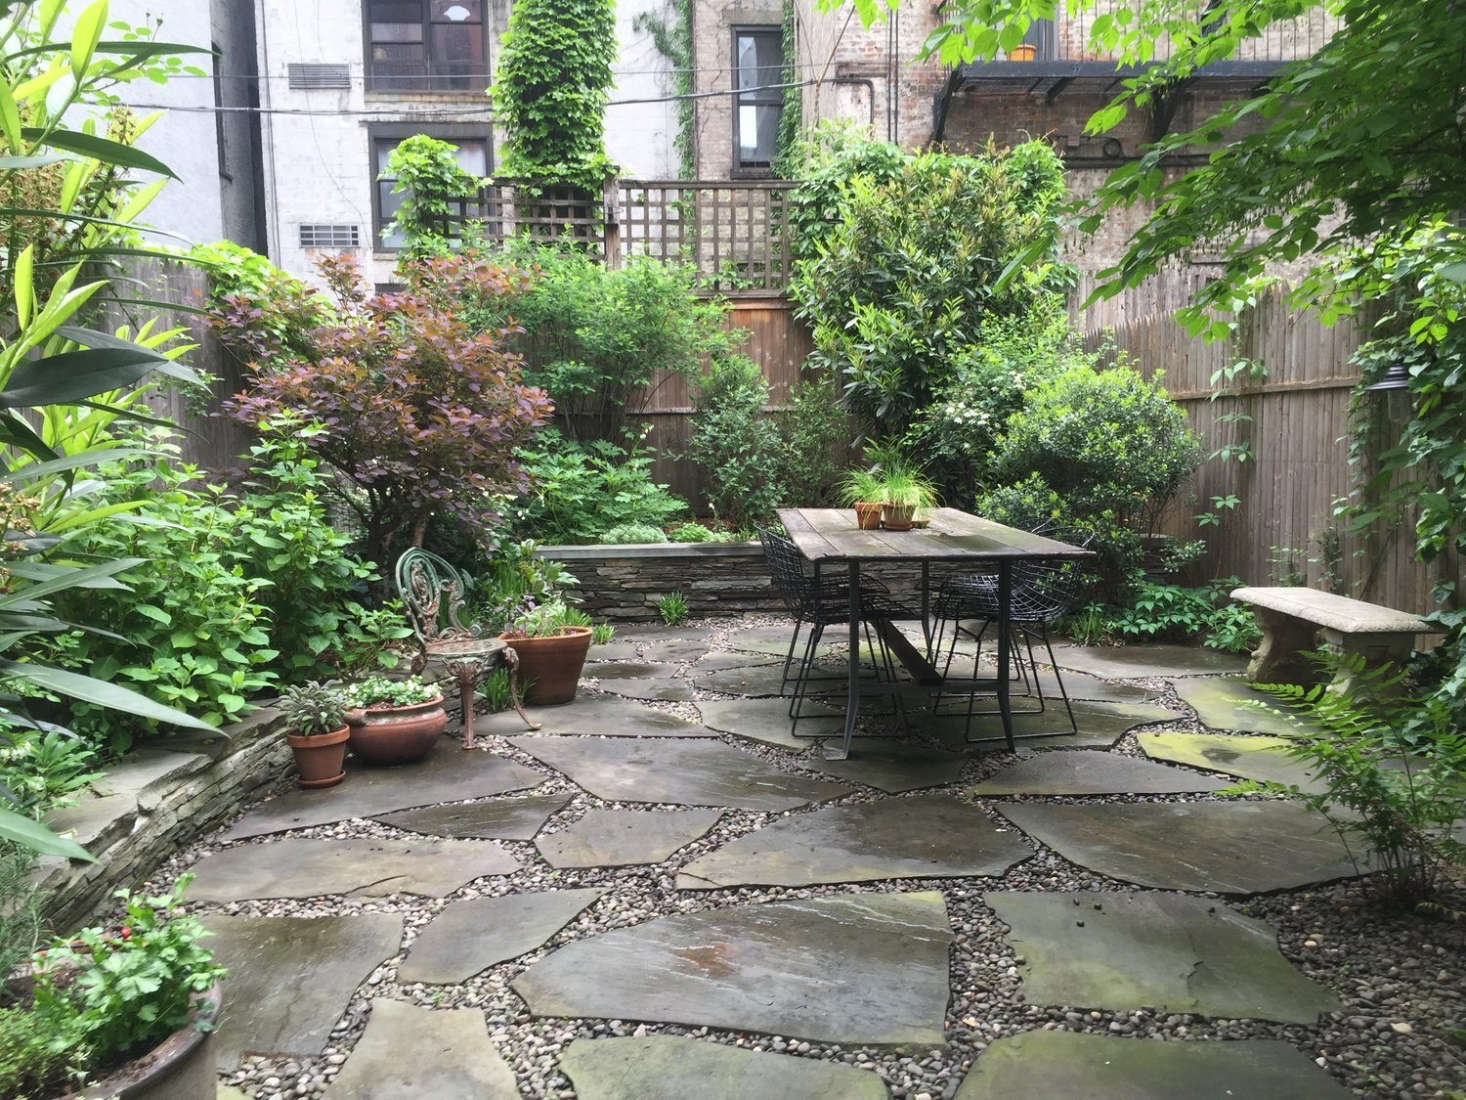 Rental Garden Makeovers: 10 Best Budget Ideas for an ... on Backyard Pebbles Design id=70583